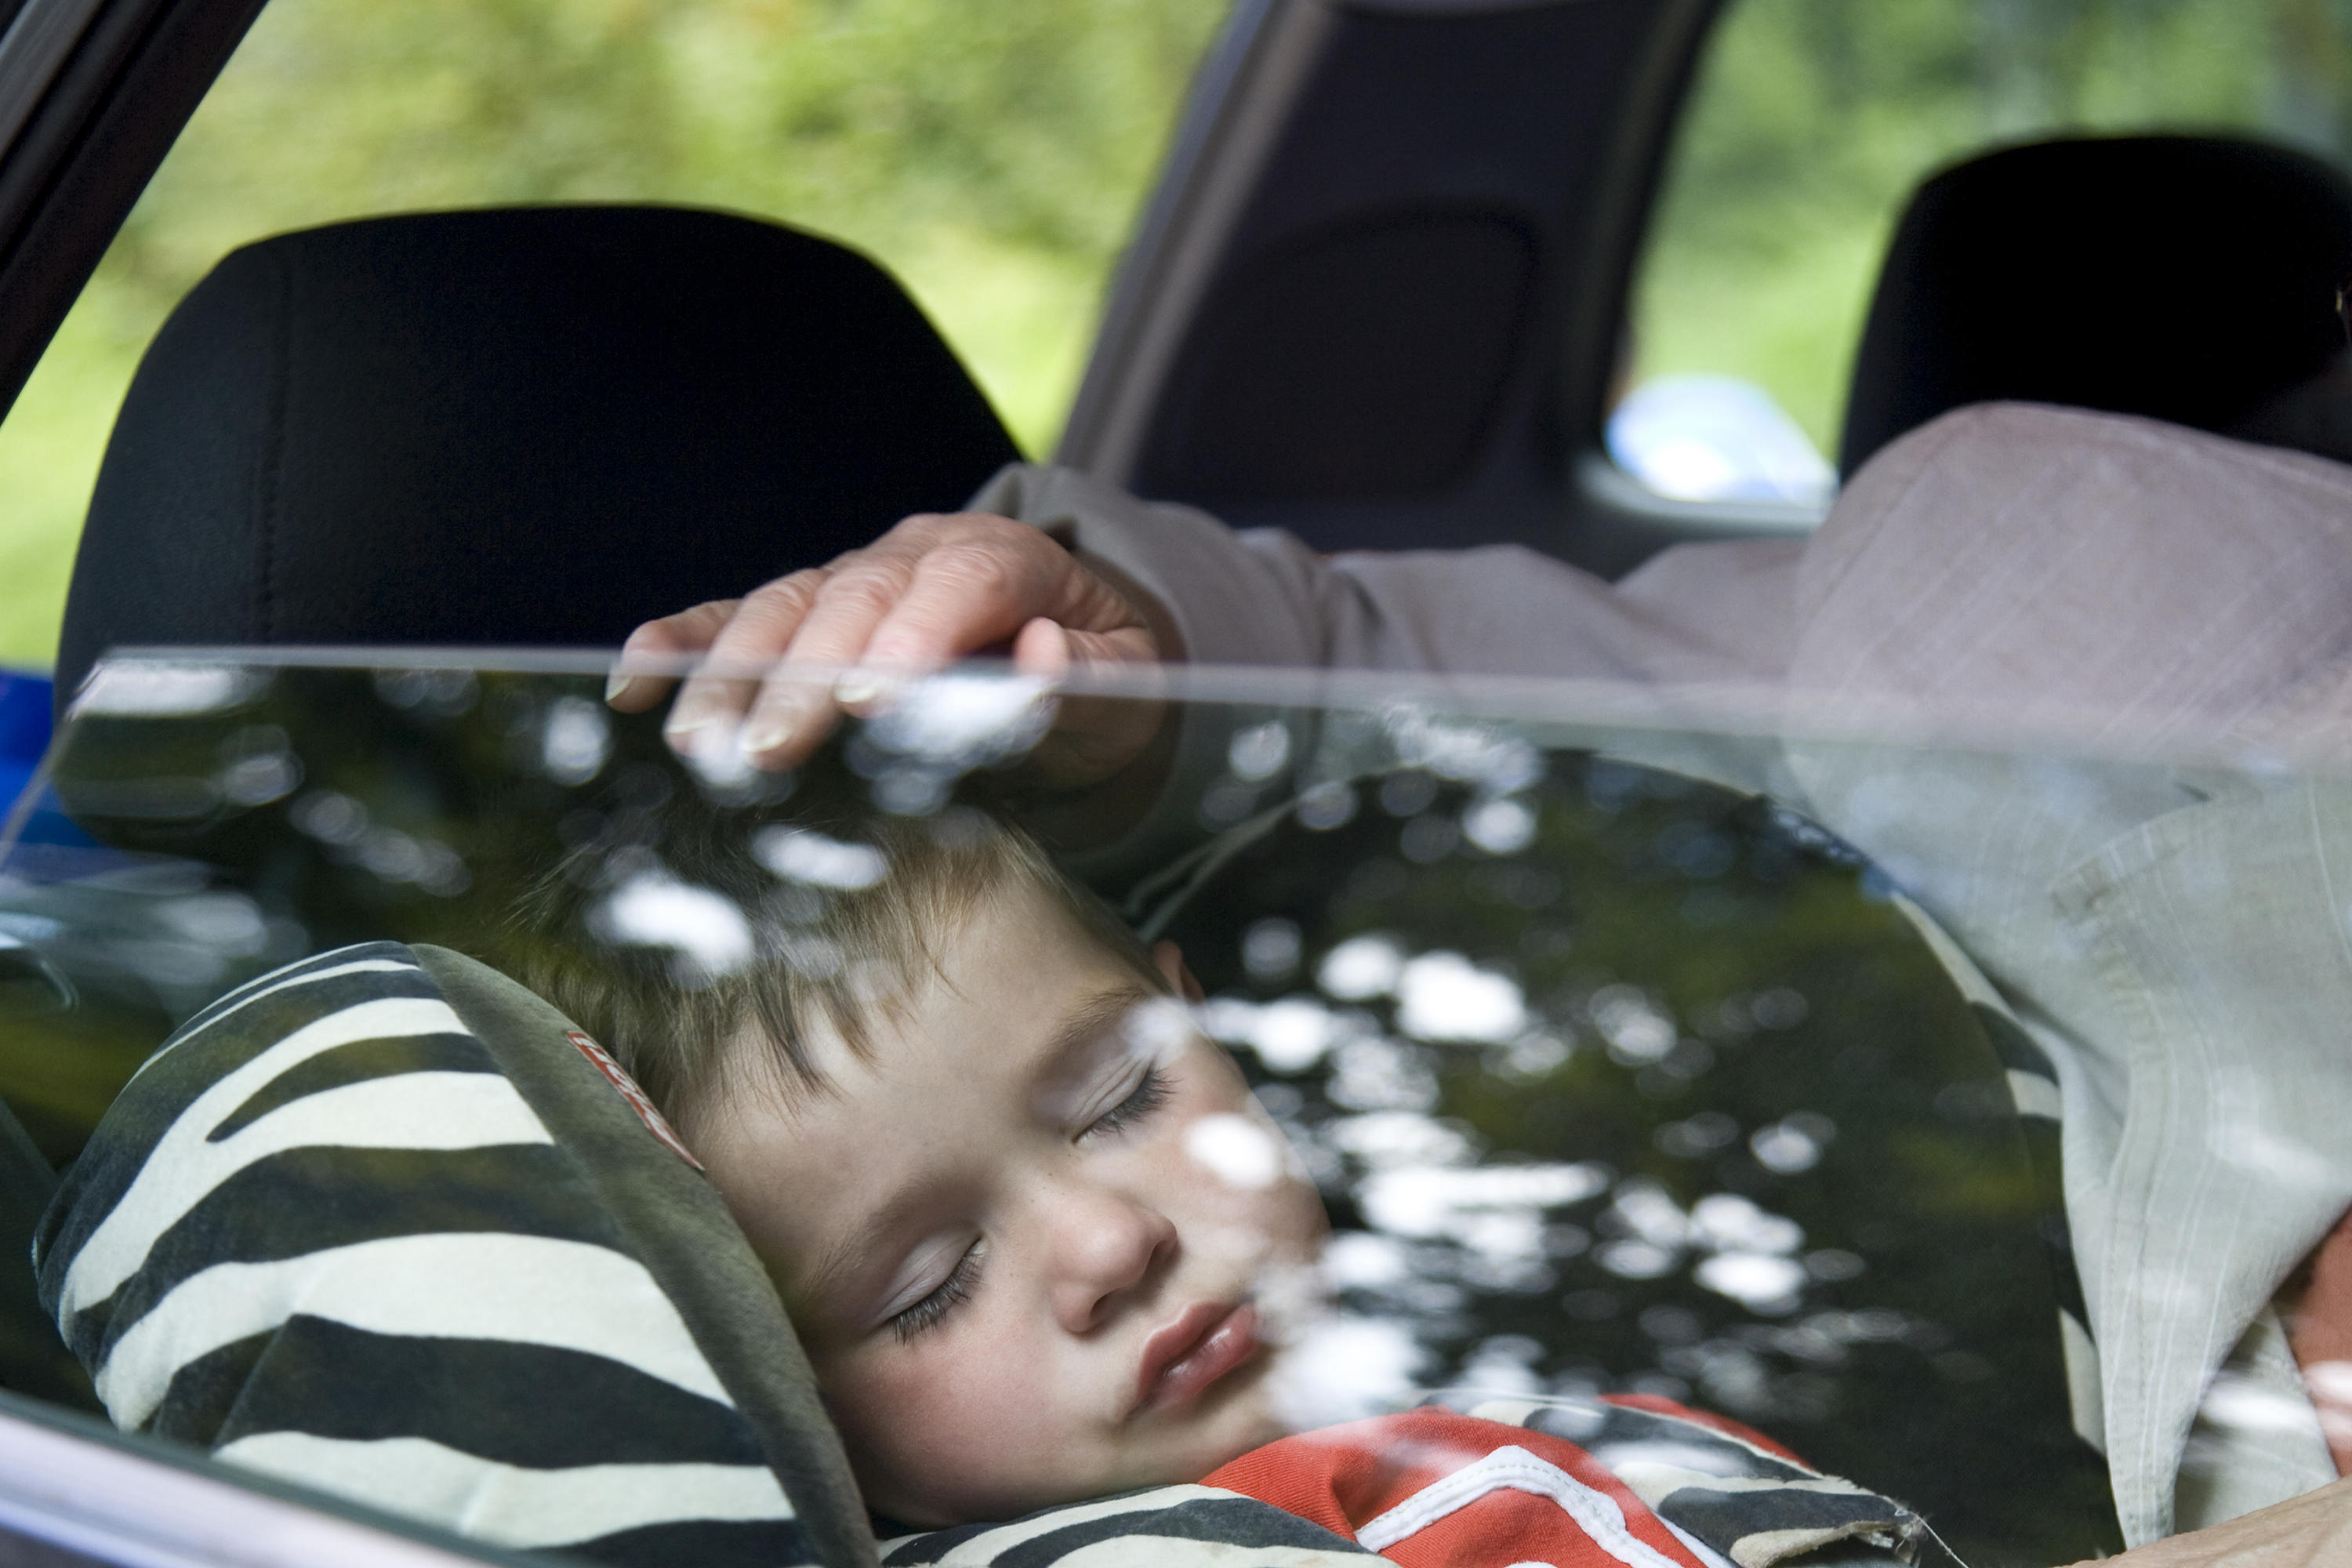 Boy Sleeping In Car Seat Experts Now Recommend Kids Stay Rear Facing Seats Until Age Of 2 THE CANADIAN PRESS ABLEIMAGES